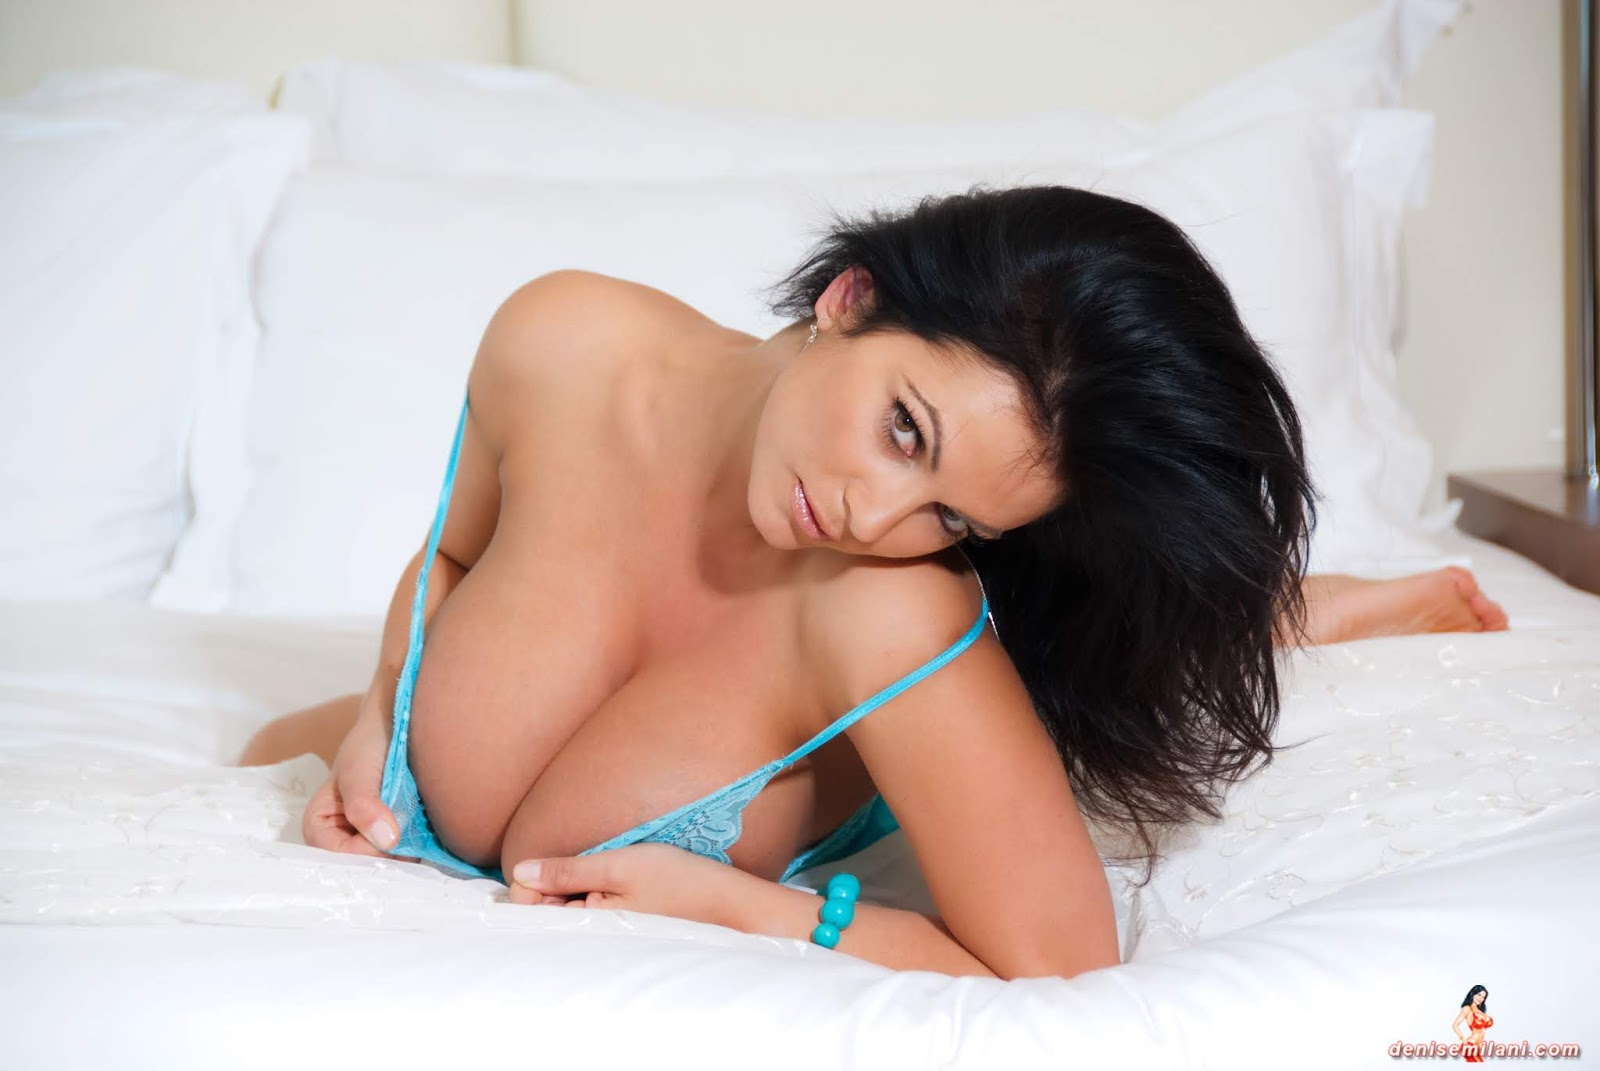 Meet and pound denise milani